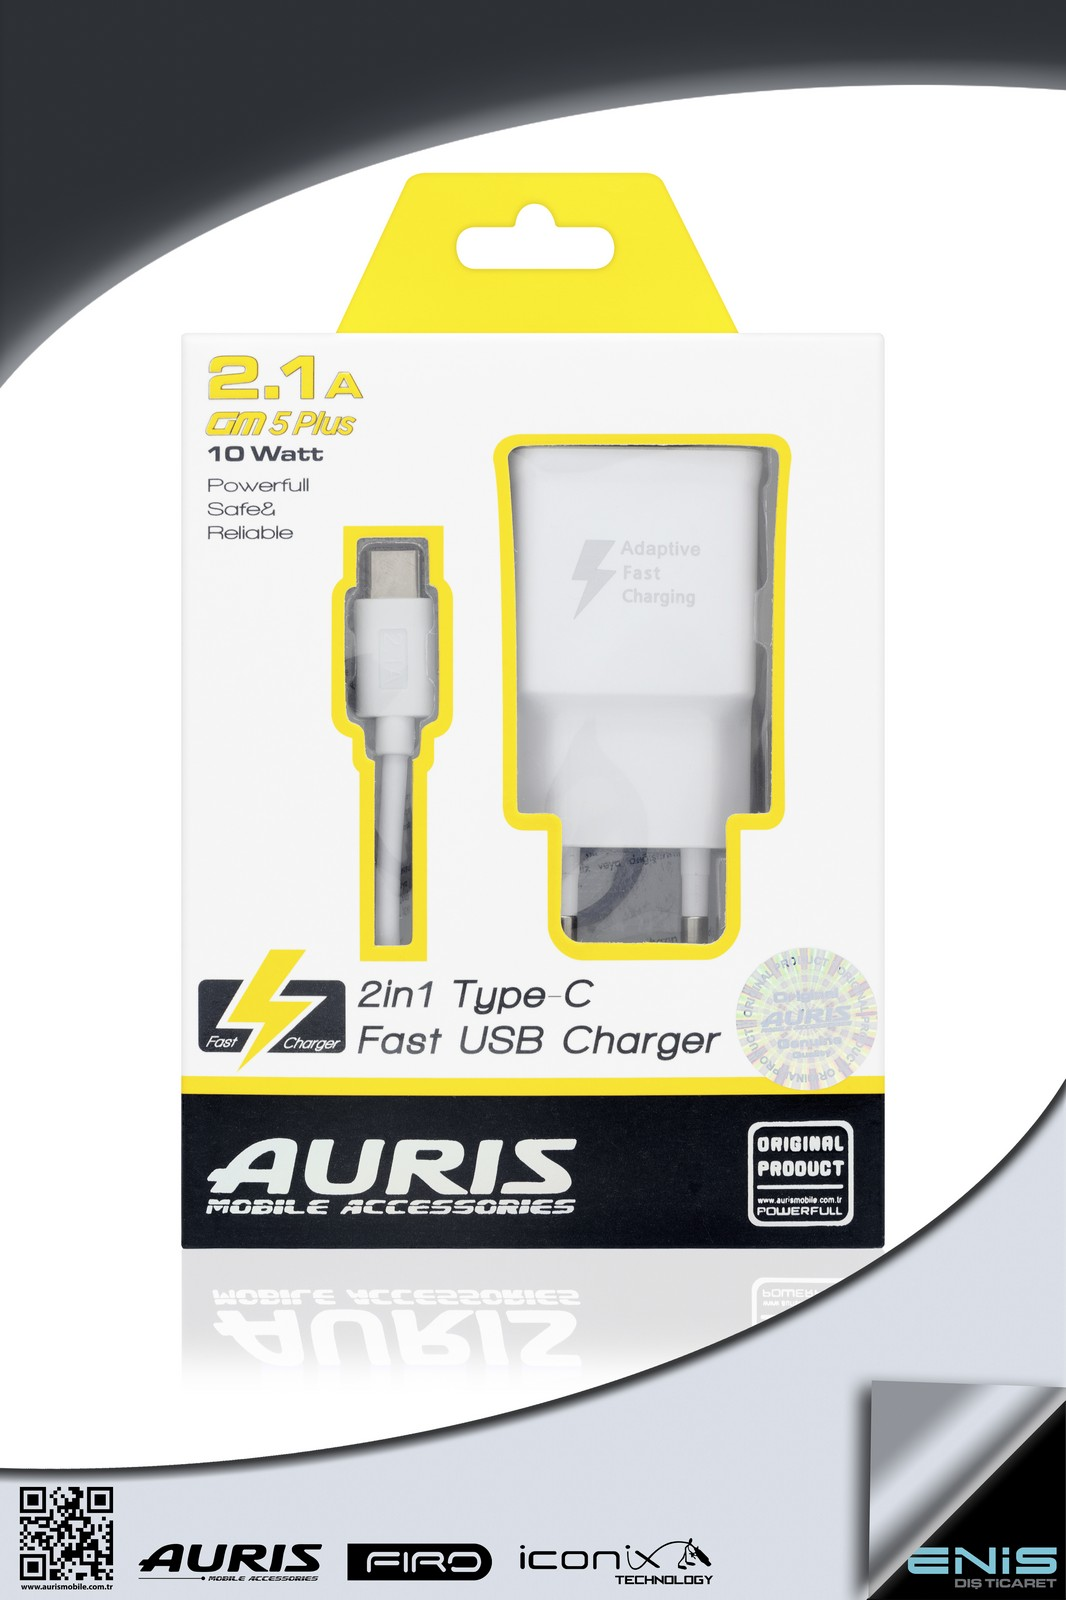 2in1 TYPE-C USB FAST CHARGER 2-1A GM5 PLUS